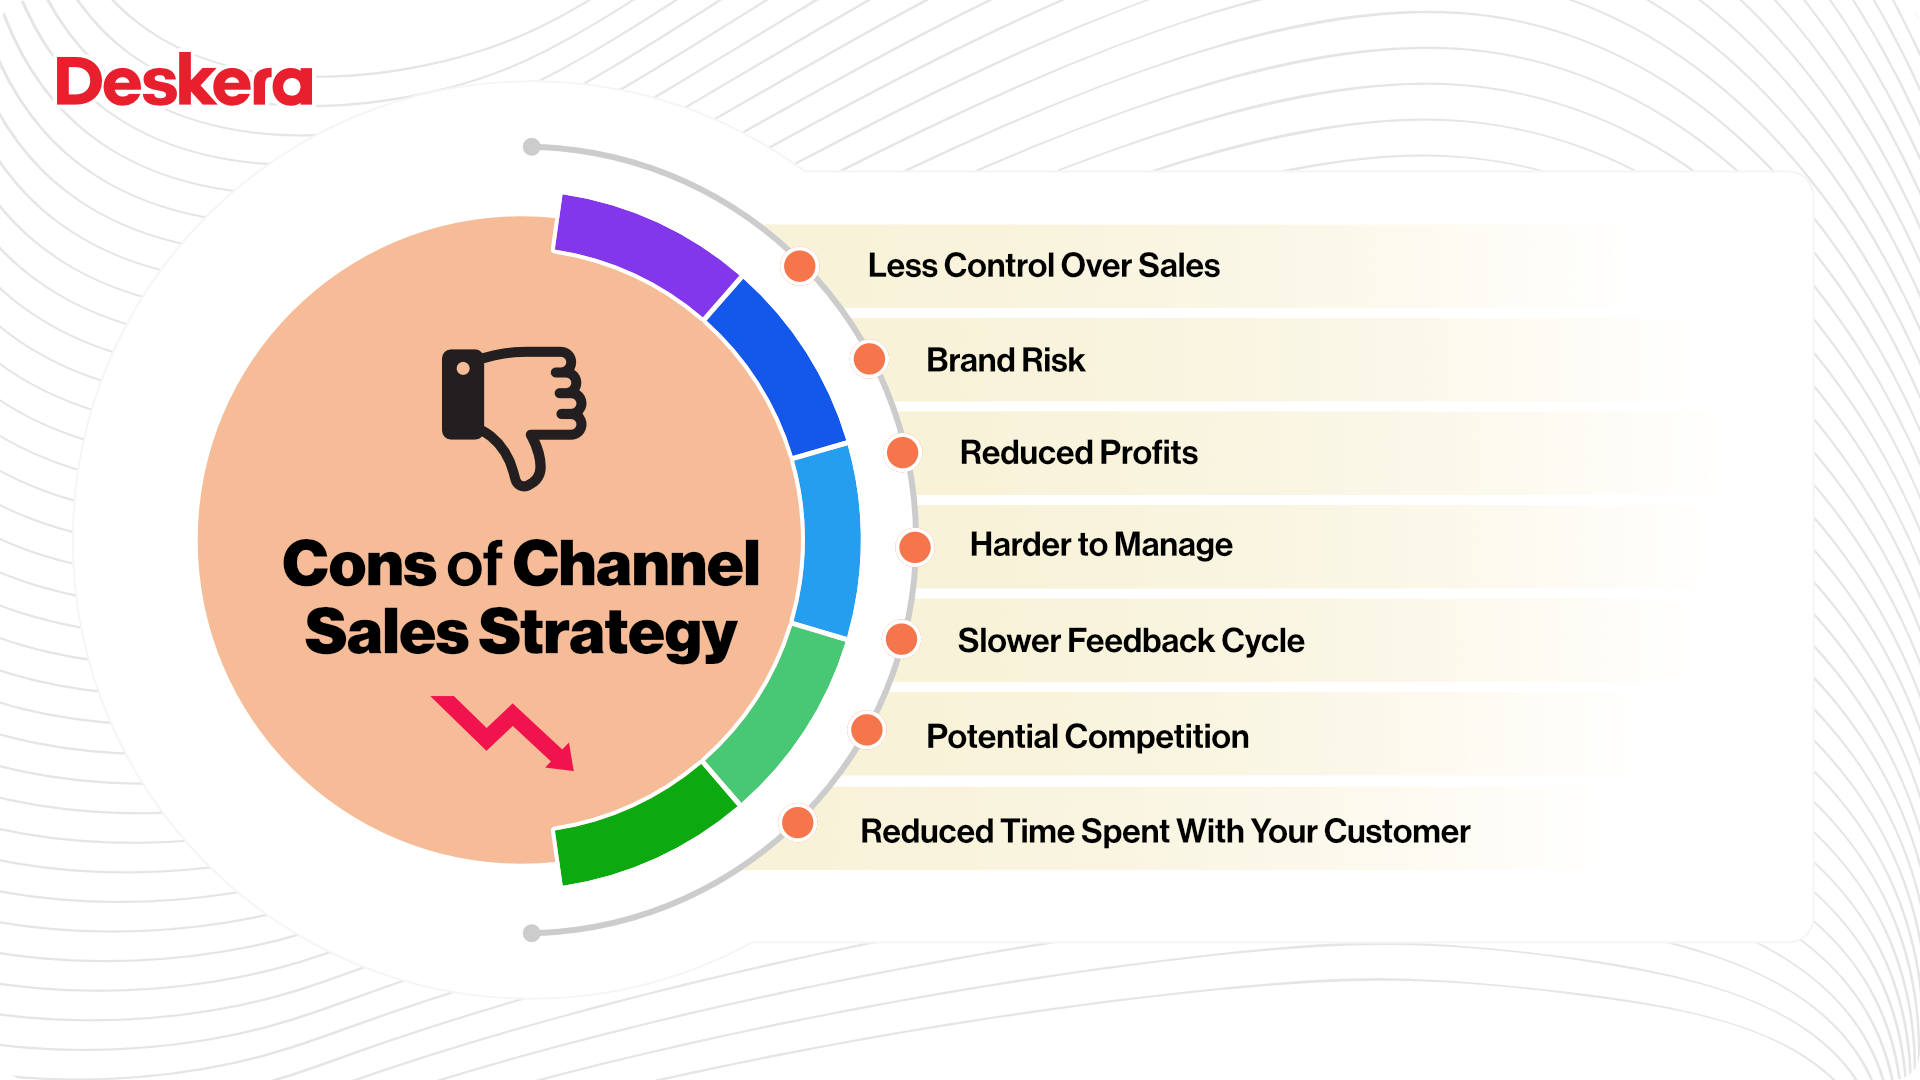 Cons of Channel Sales Strategy